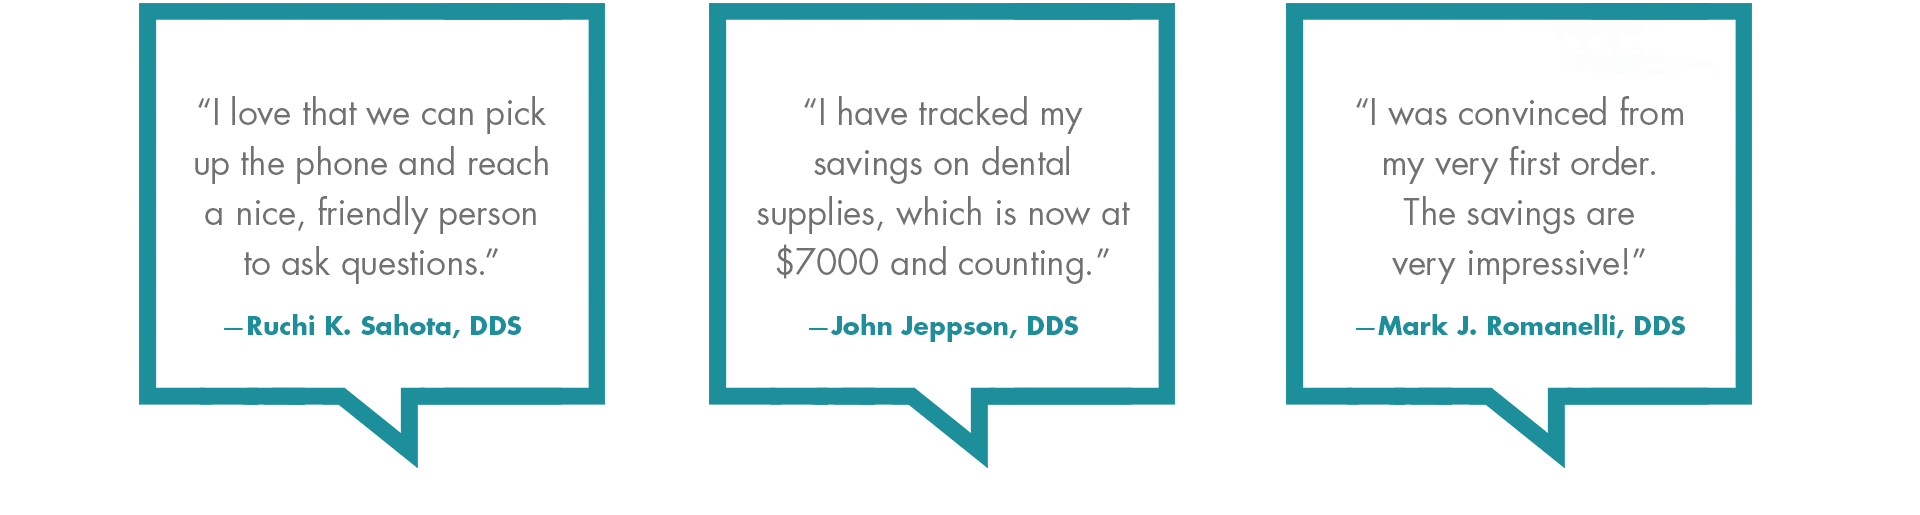 Testimonials: 'I love that we can pick up the phone and reach a nice, friendly person to ak questions.' - Ruchi K. Sahota, DDS. | 'I have tracked my savings on dental supplies, which is now at $7000 and counting.' - John Jeppson, DDS. | 'I was convinced from my very first order. The savings are very impressive!' - Mark J. Romanelli, DDS